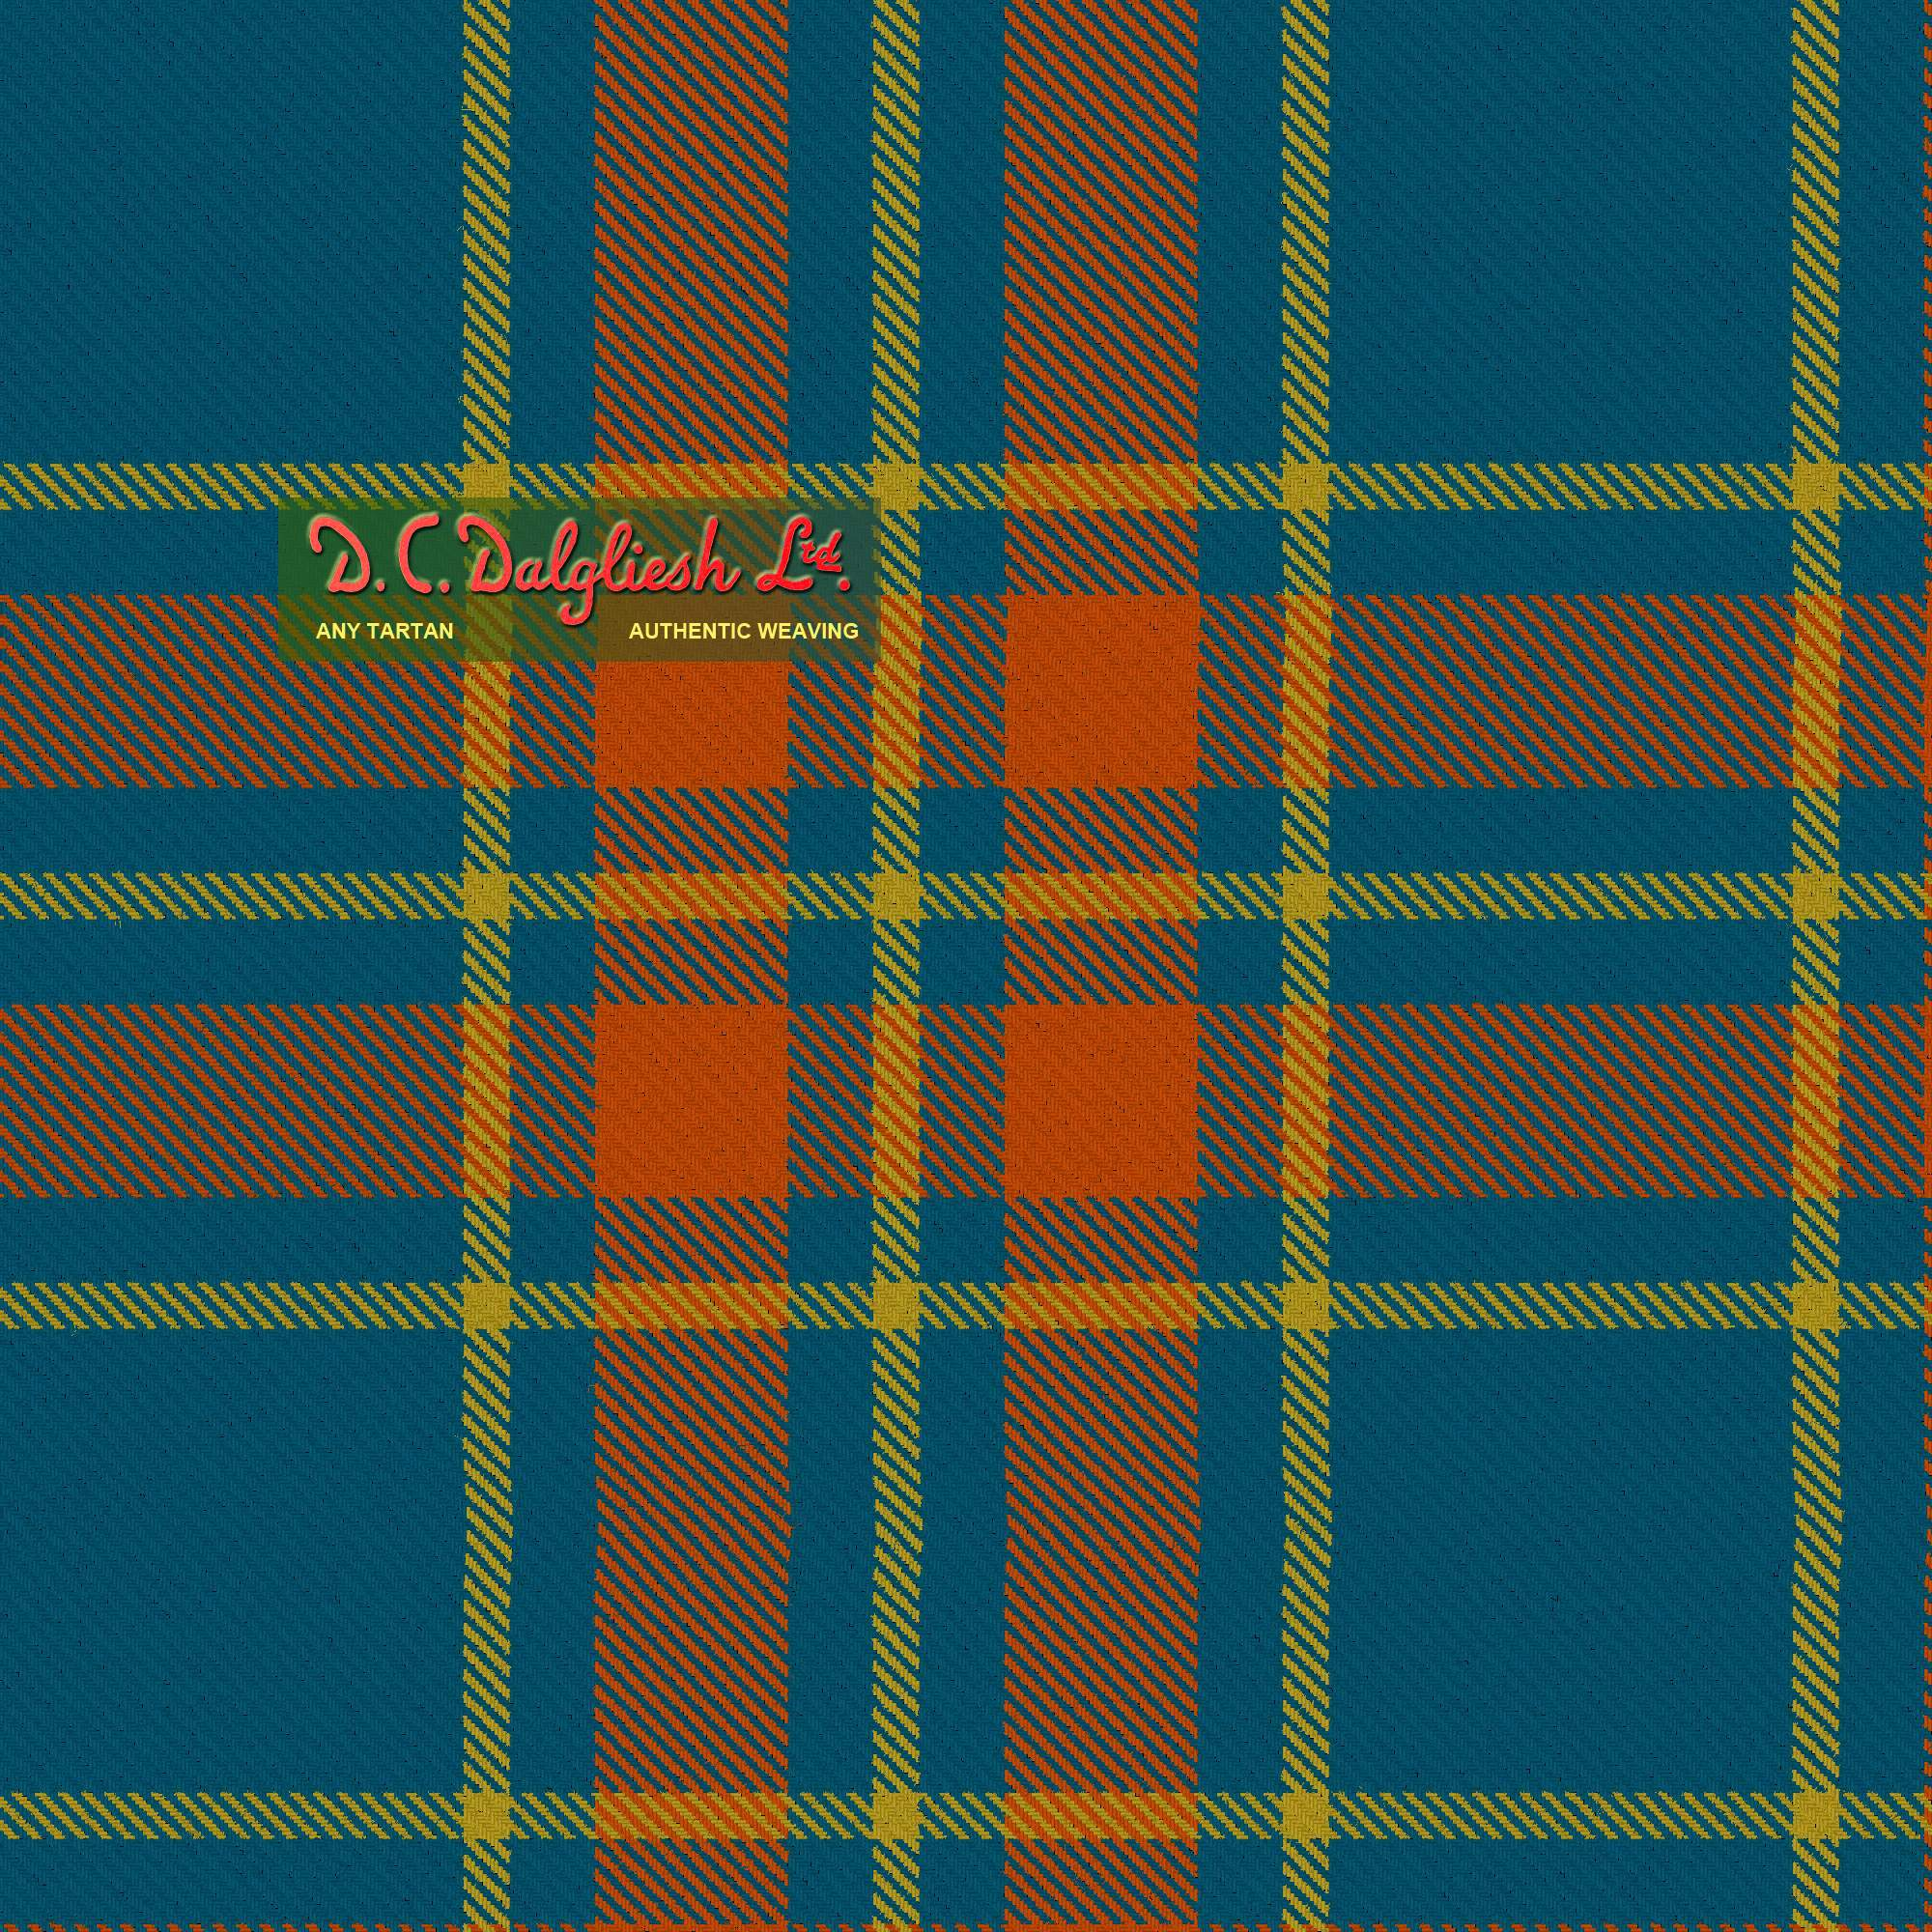 South Australia Pipes Amp Drums Fabric By Dc Dalgliesh